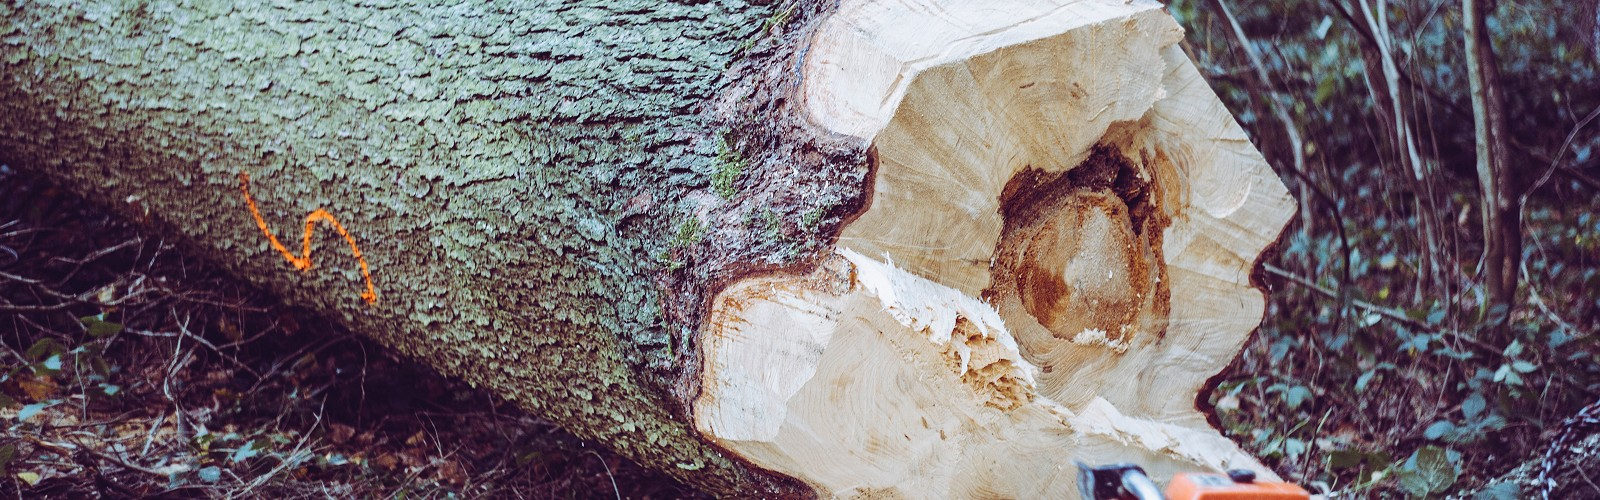 Freshly felled tree, cut end showing with chainsaw in front (image: Markus Spiske on unsplash)